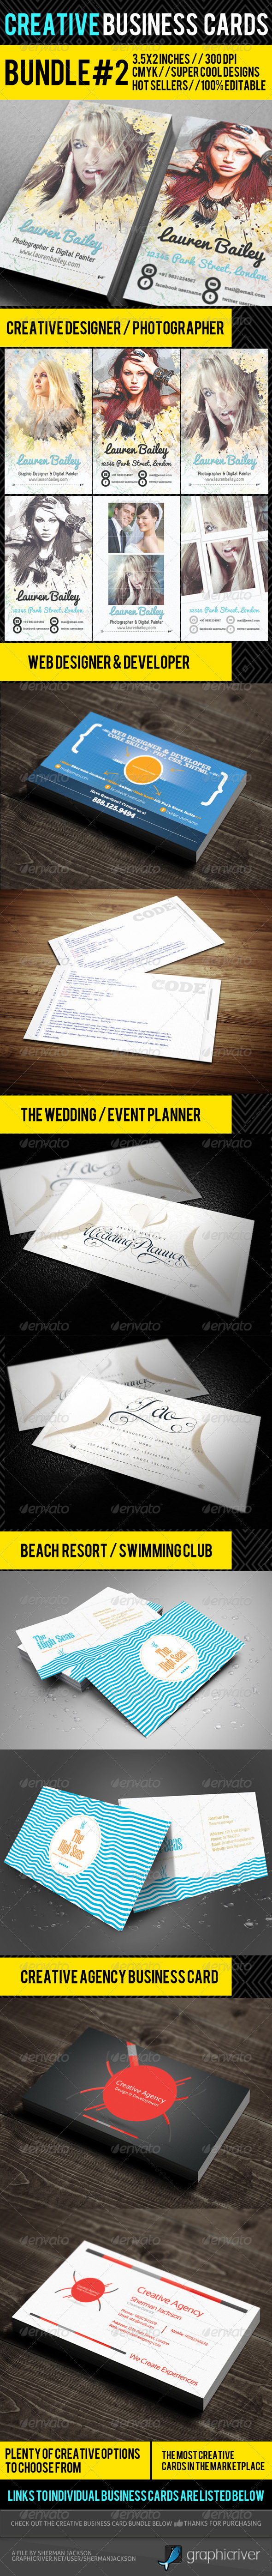 Creative Business Card Premium Bundle #2 - Creative Business Cards